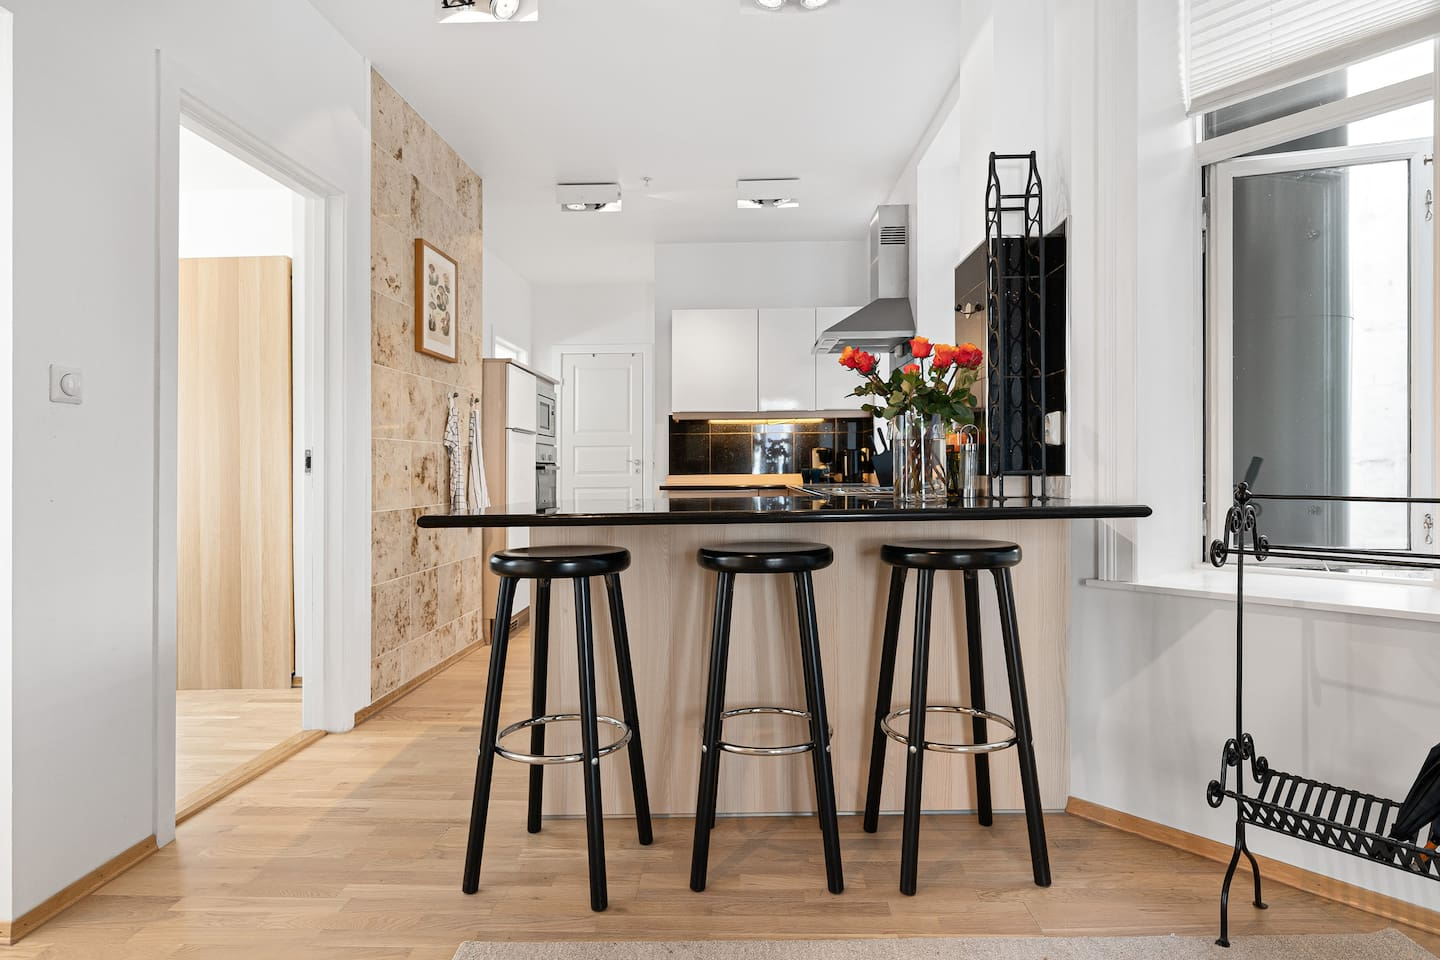 Brand new redecorated apt in the heart of Bergen